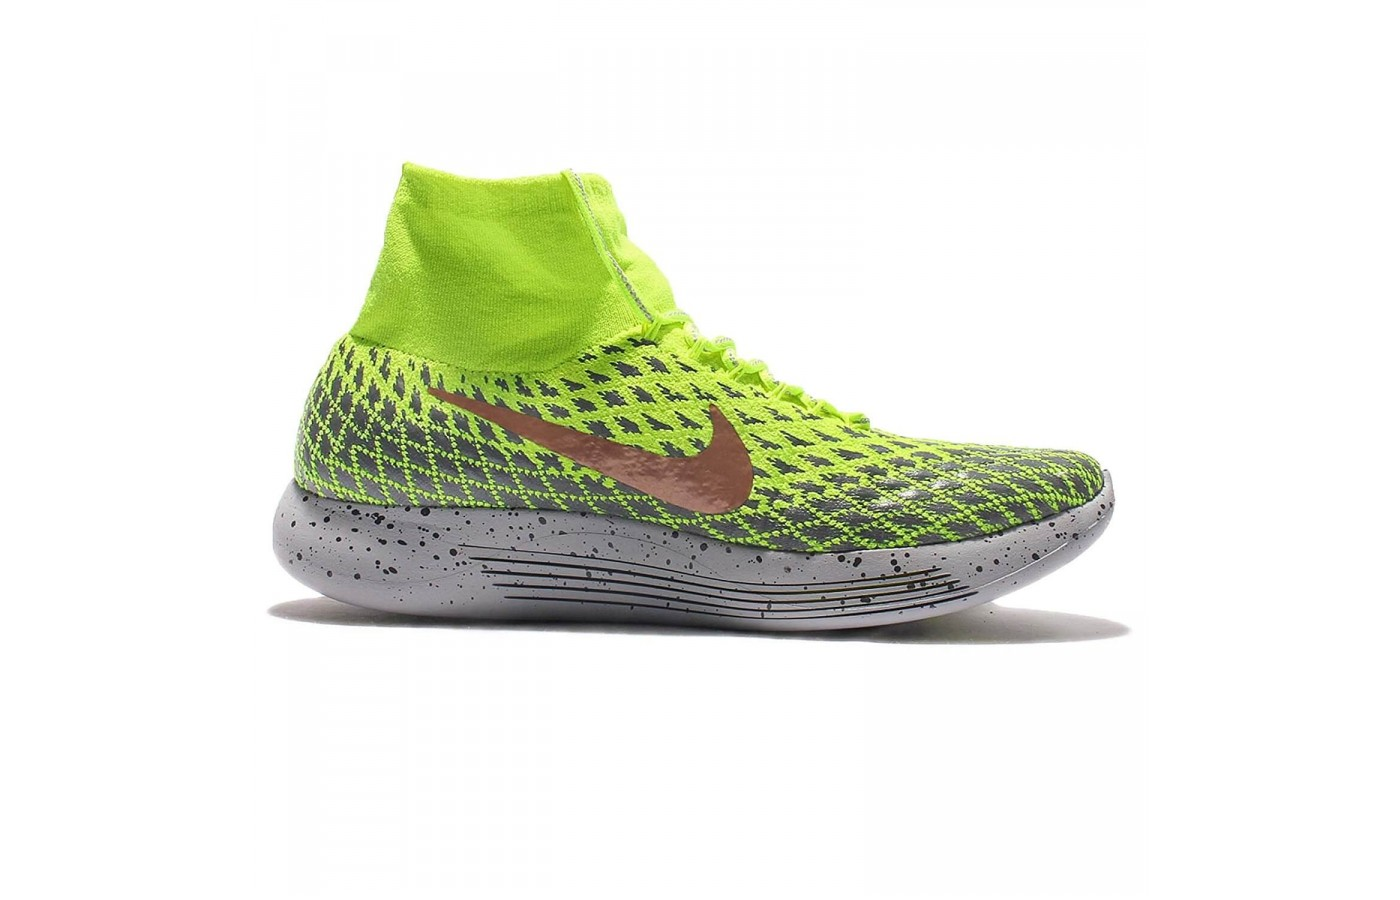 Medial view of Nike LunarEpic FlyKnit Shield